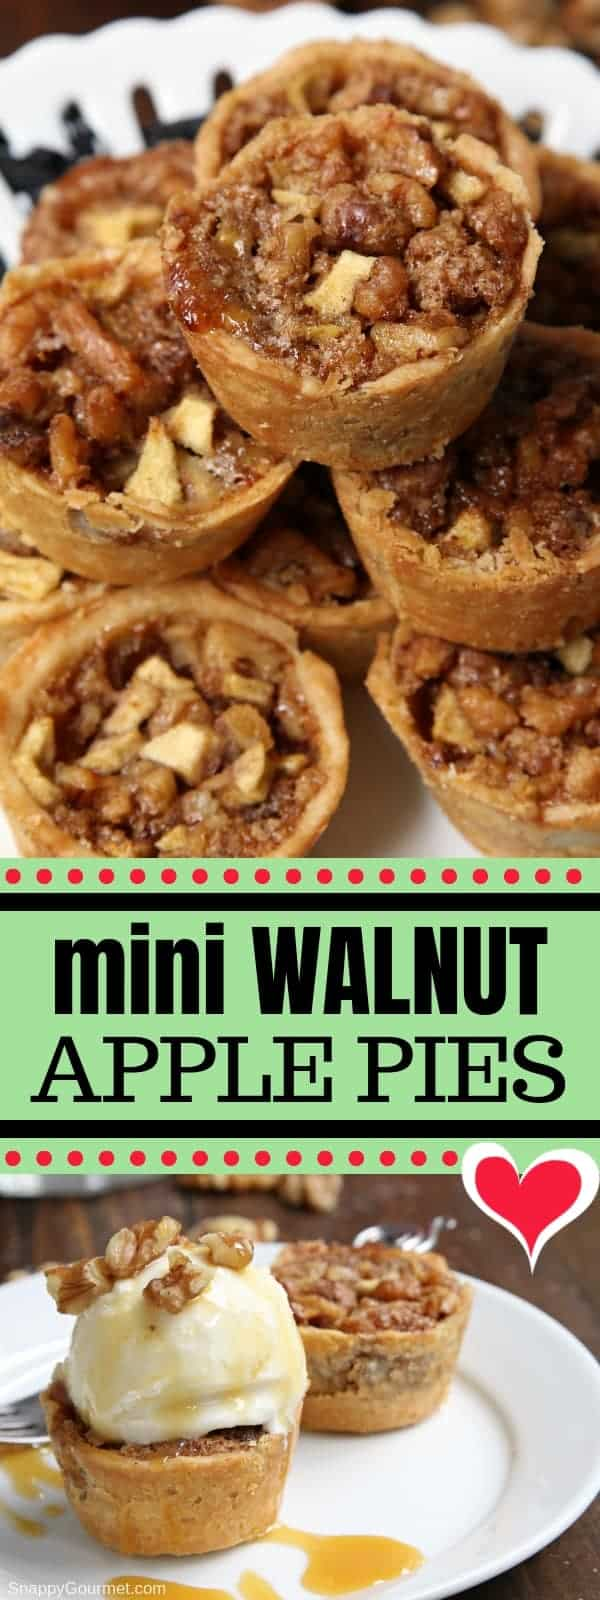 Mini Walnut Apple Pies - easy muffin tin apple pie recipes